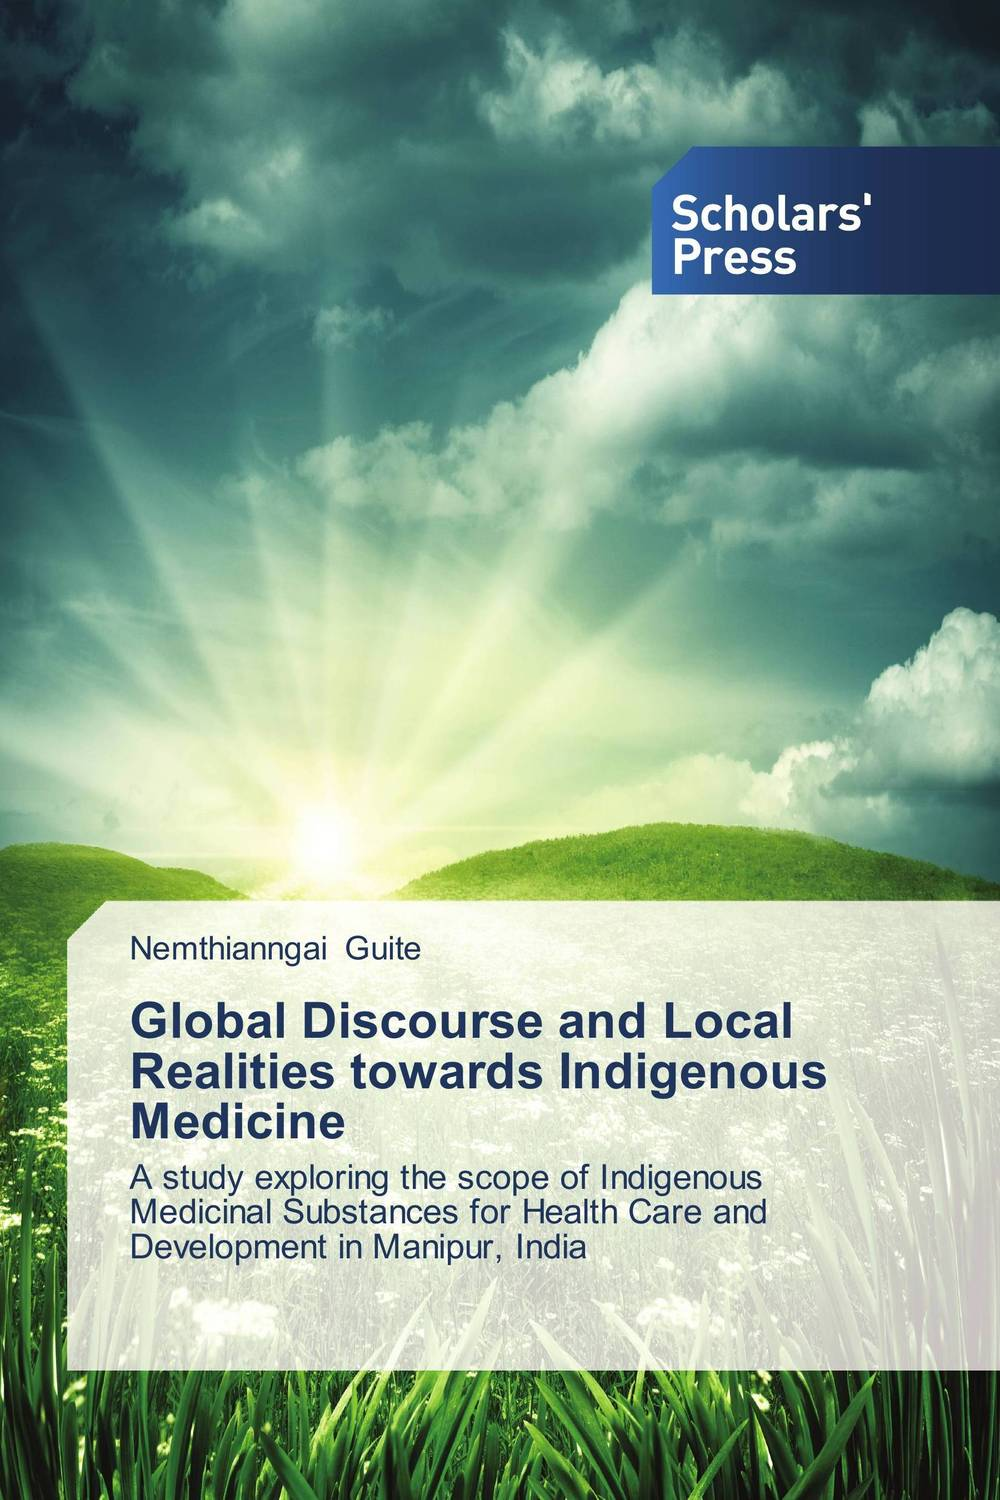 Global Discourse and Local Realities towards Indigenous Medicine the application of global ethics to solve local improprieties